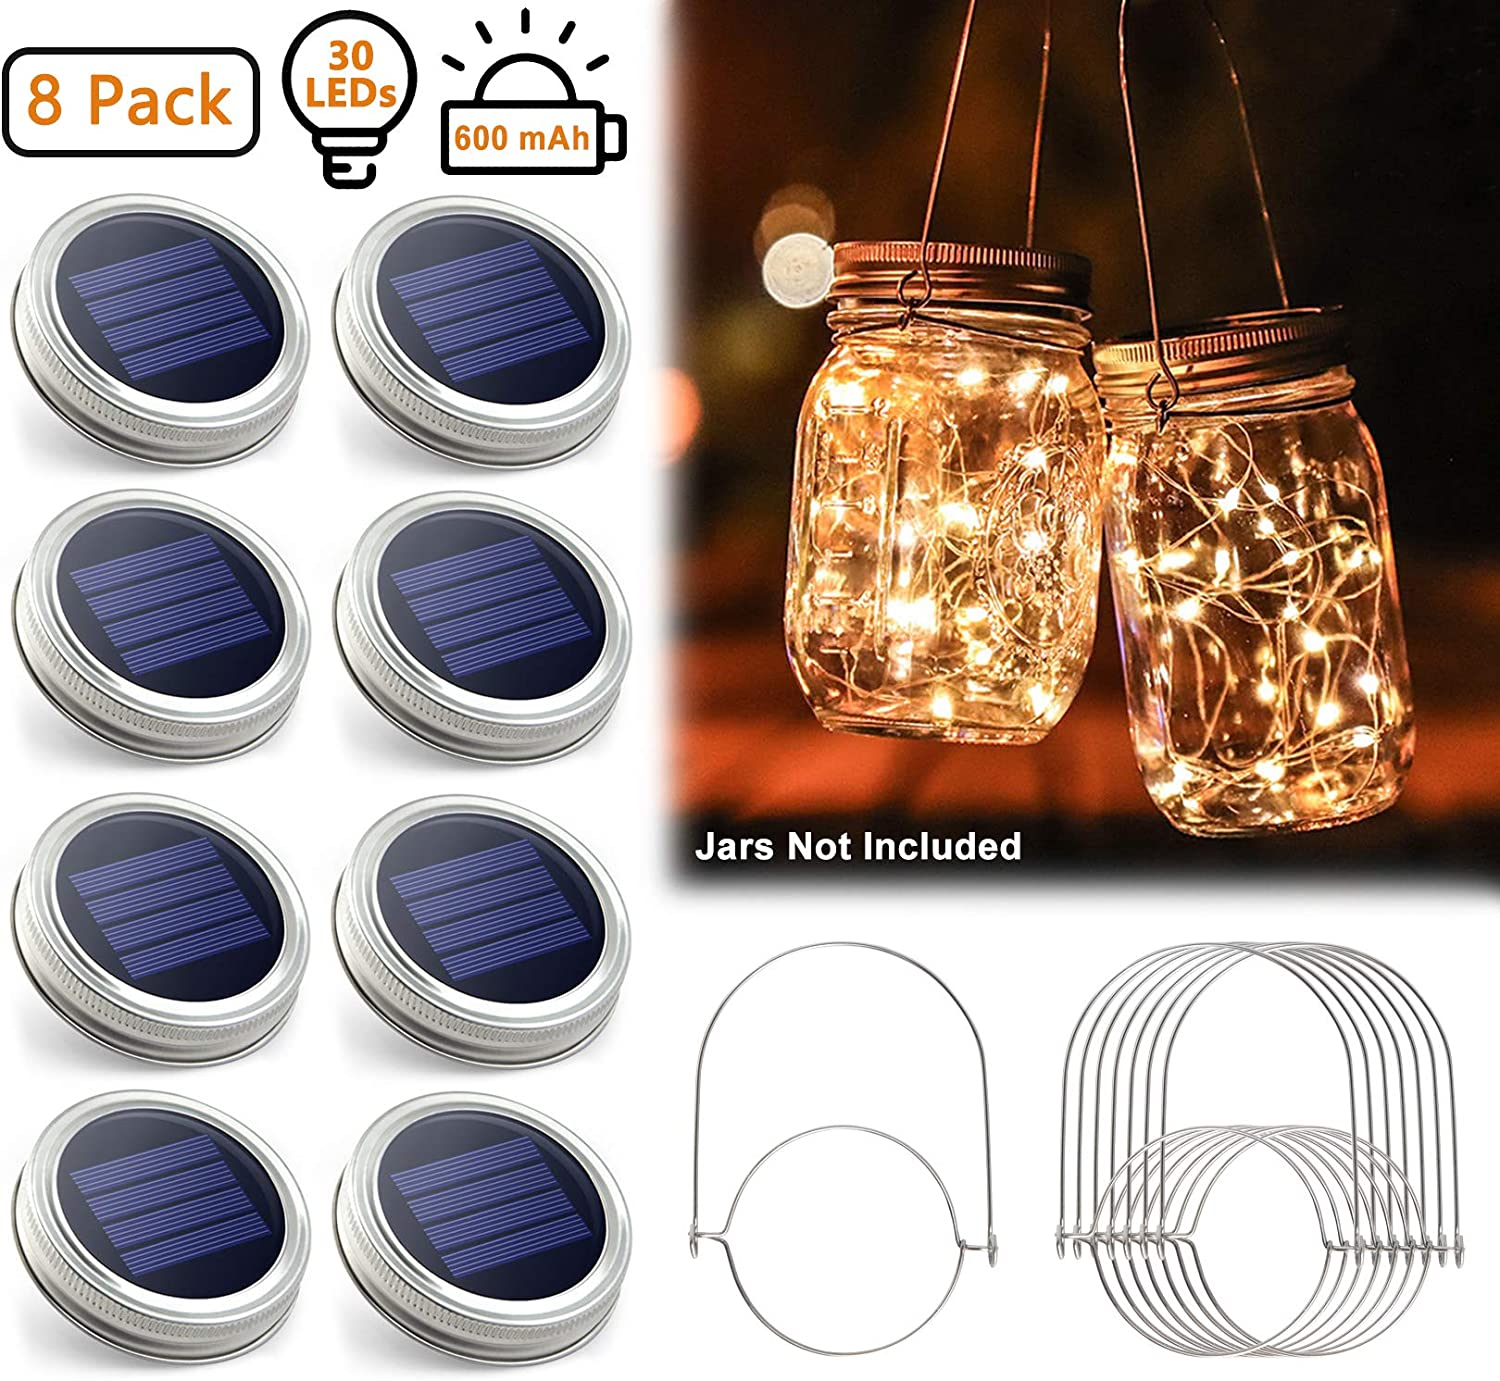 Urvoix Solar Mason Jar Lights - 8 Pack 30 Led String Waterproof Lids Lights with 8 Handle (Jars Not Included), Perfect for Outdoor Garden Patio Party Decorations